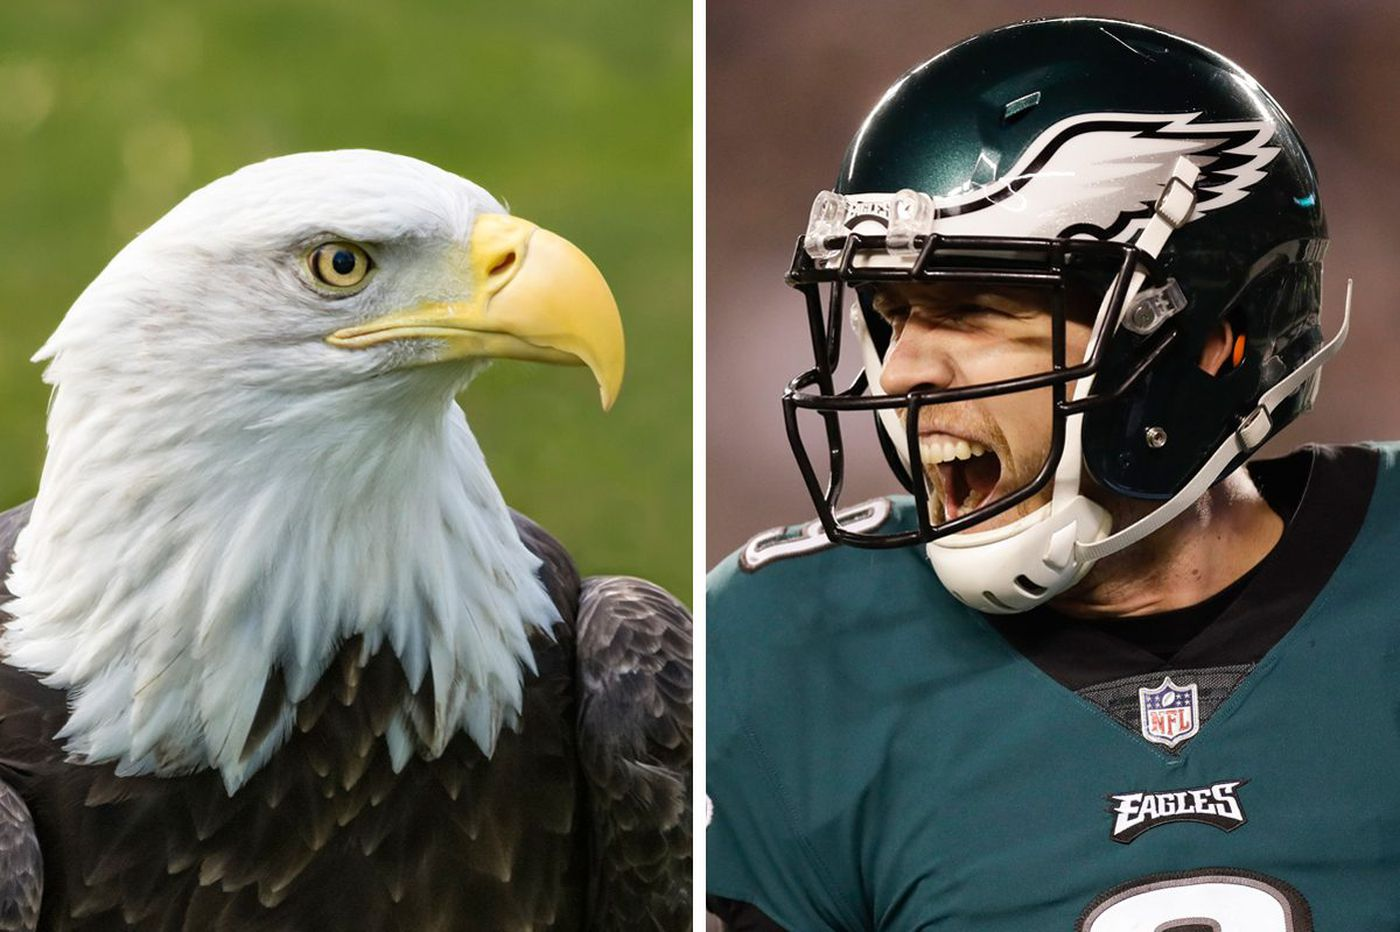 The Philadelphia Eagles and their winged mascot have more in common than you might think